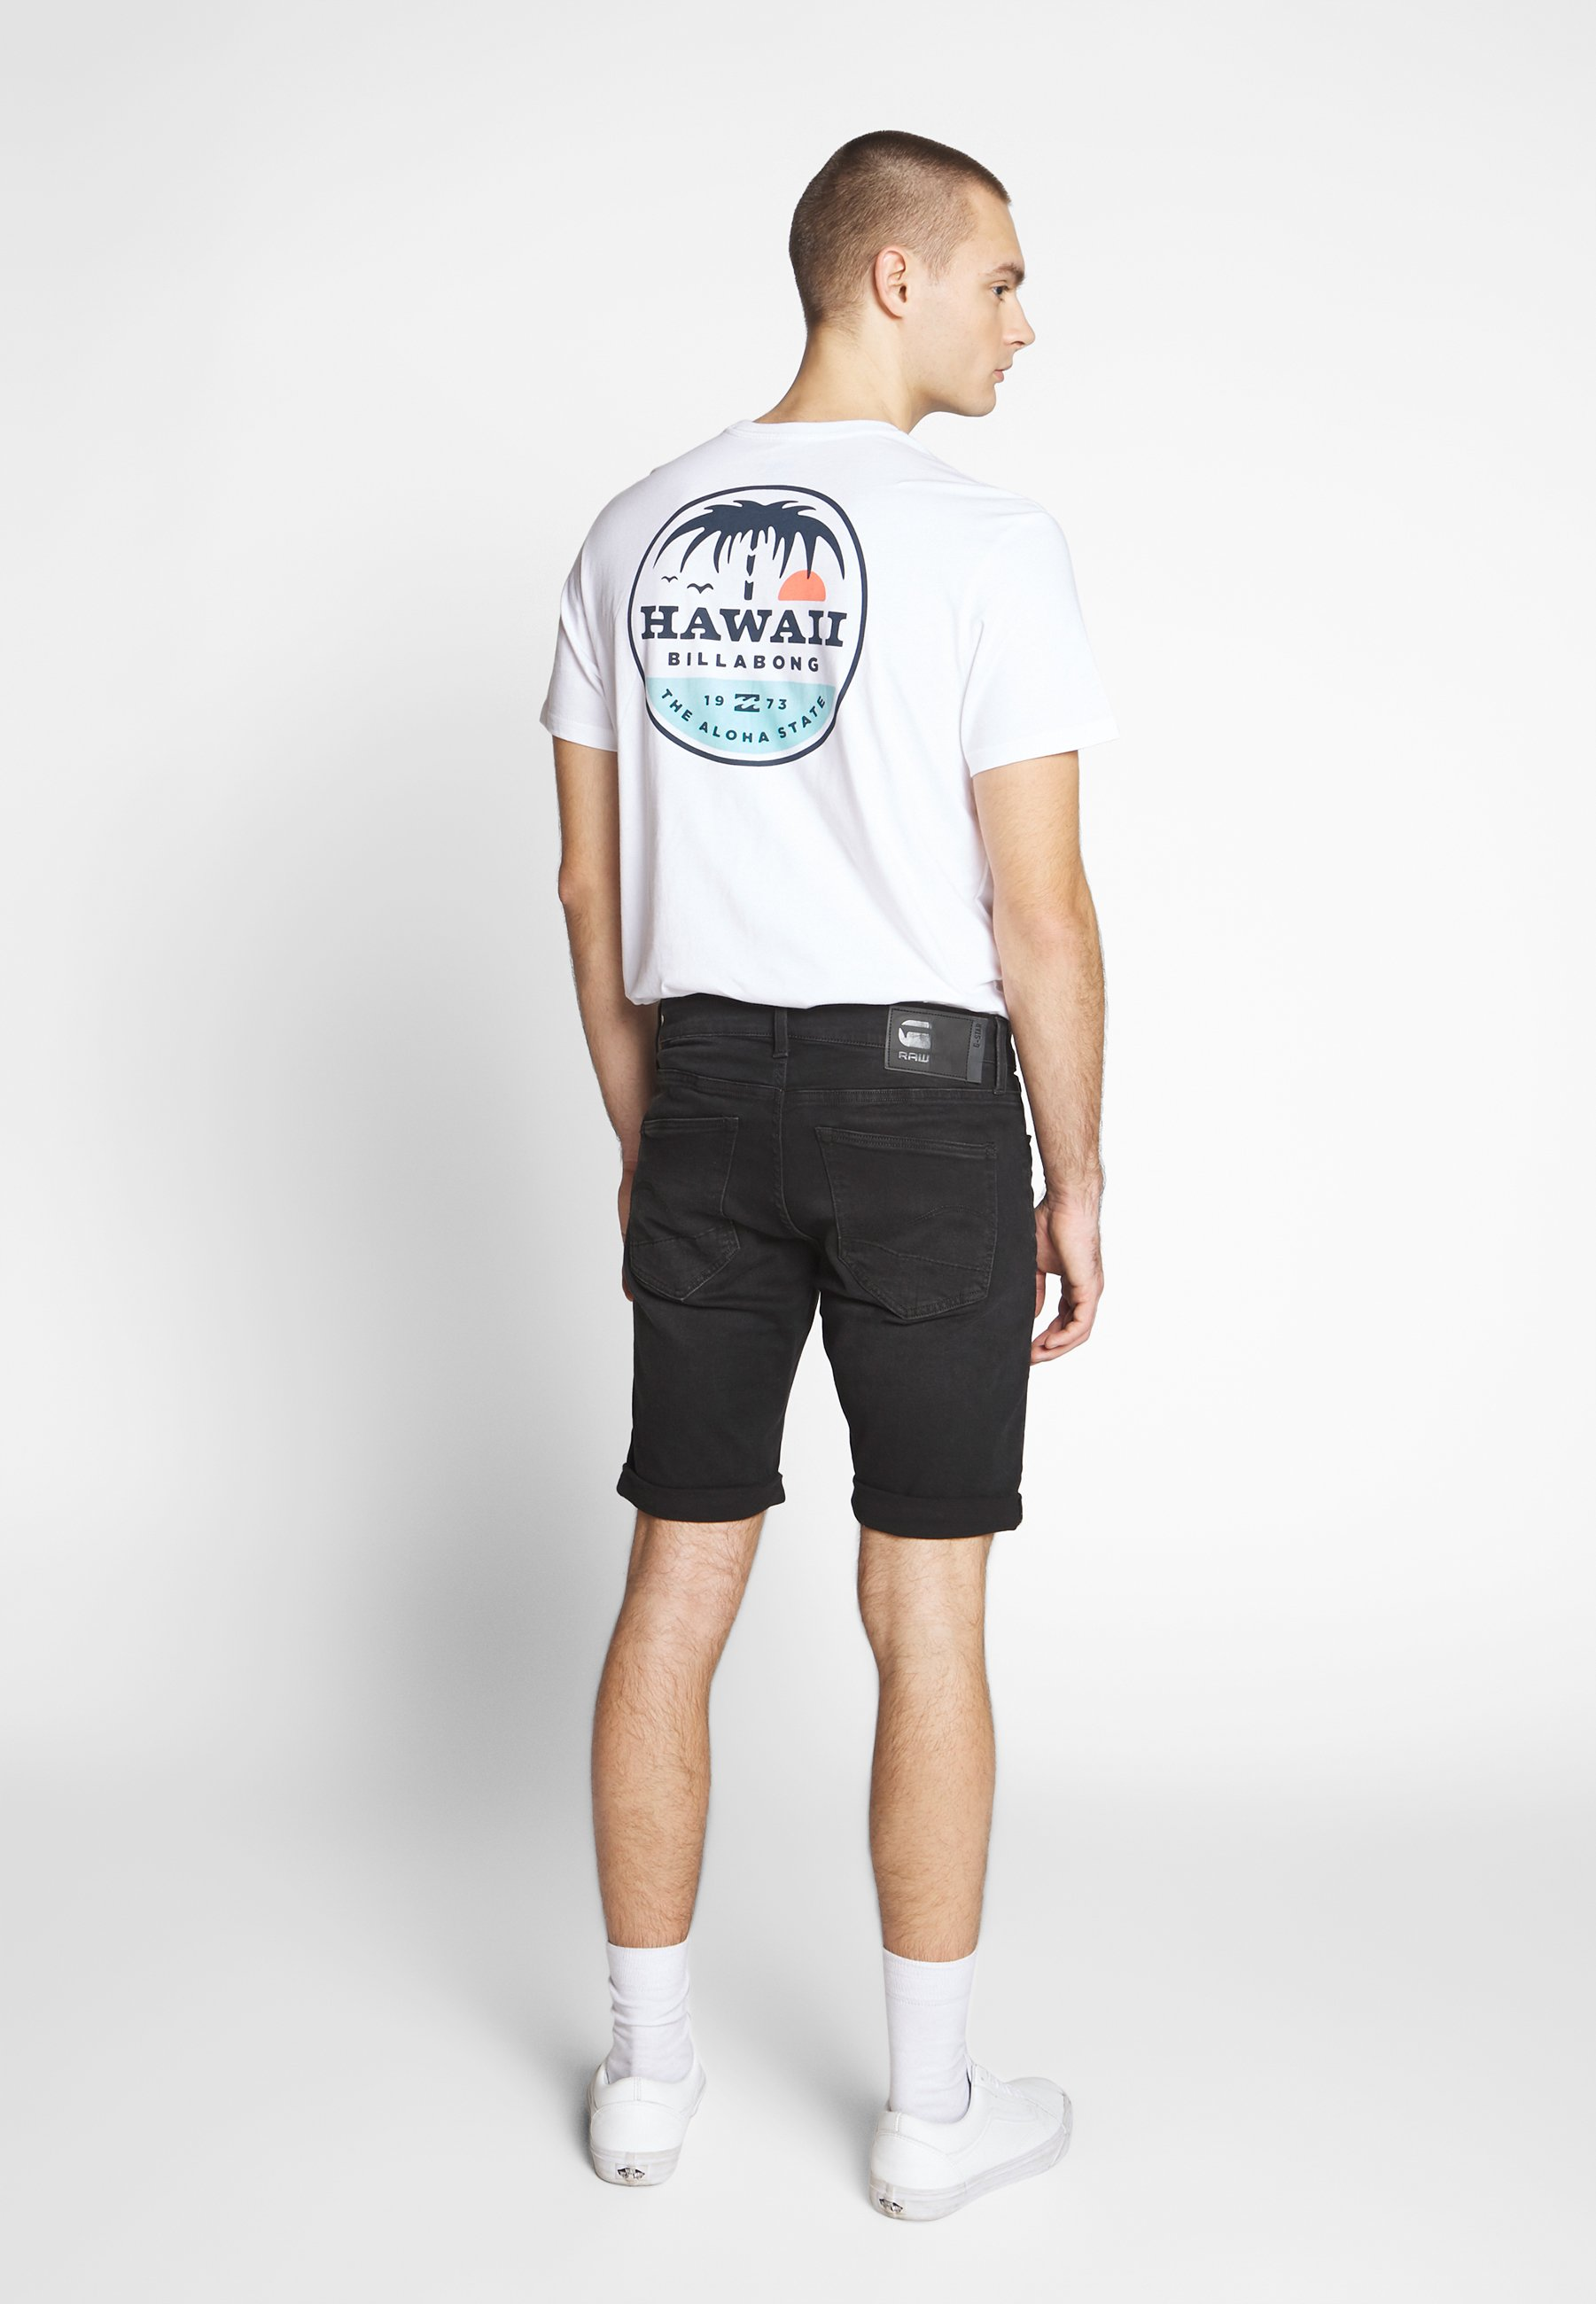 G-star 3301 Slim Short - Jeansshorts Elto Nero Black/worn In Meteor